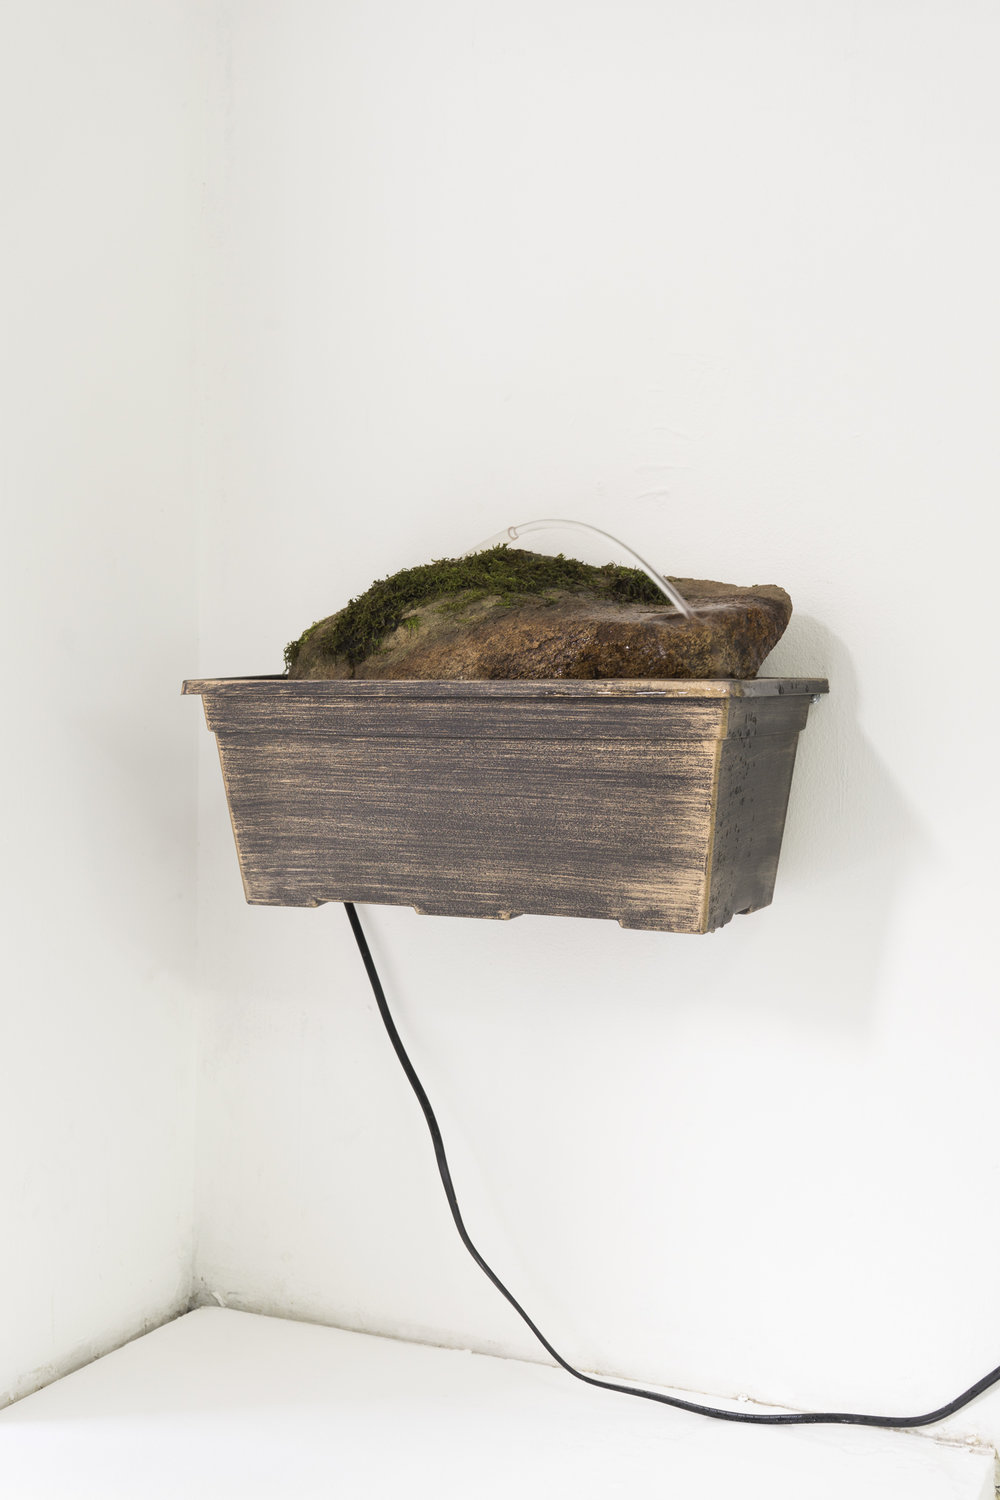 Ben Morgan-Cleveland,    Soothing Waterfall 1 , 2018, plastic basin, tubing, rocks, recirculating water pump, metal shelving brackets, water, 9 × 15 × 8 inches